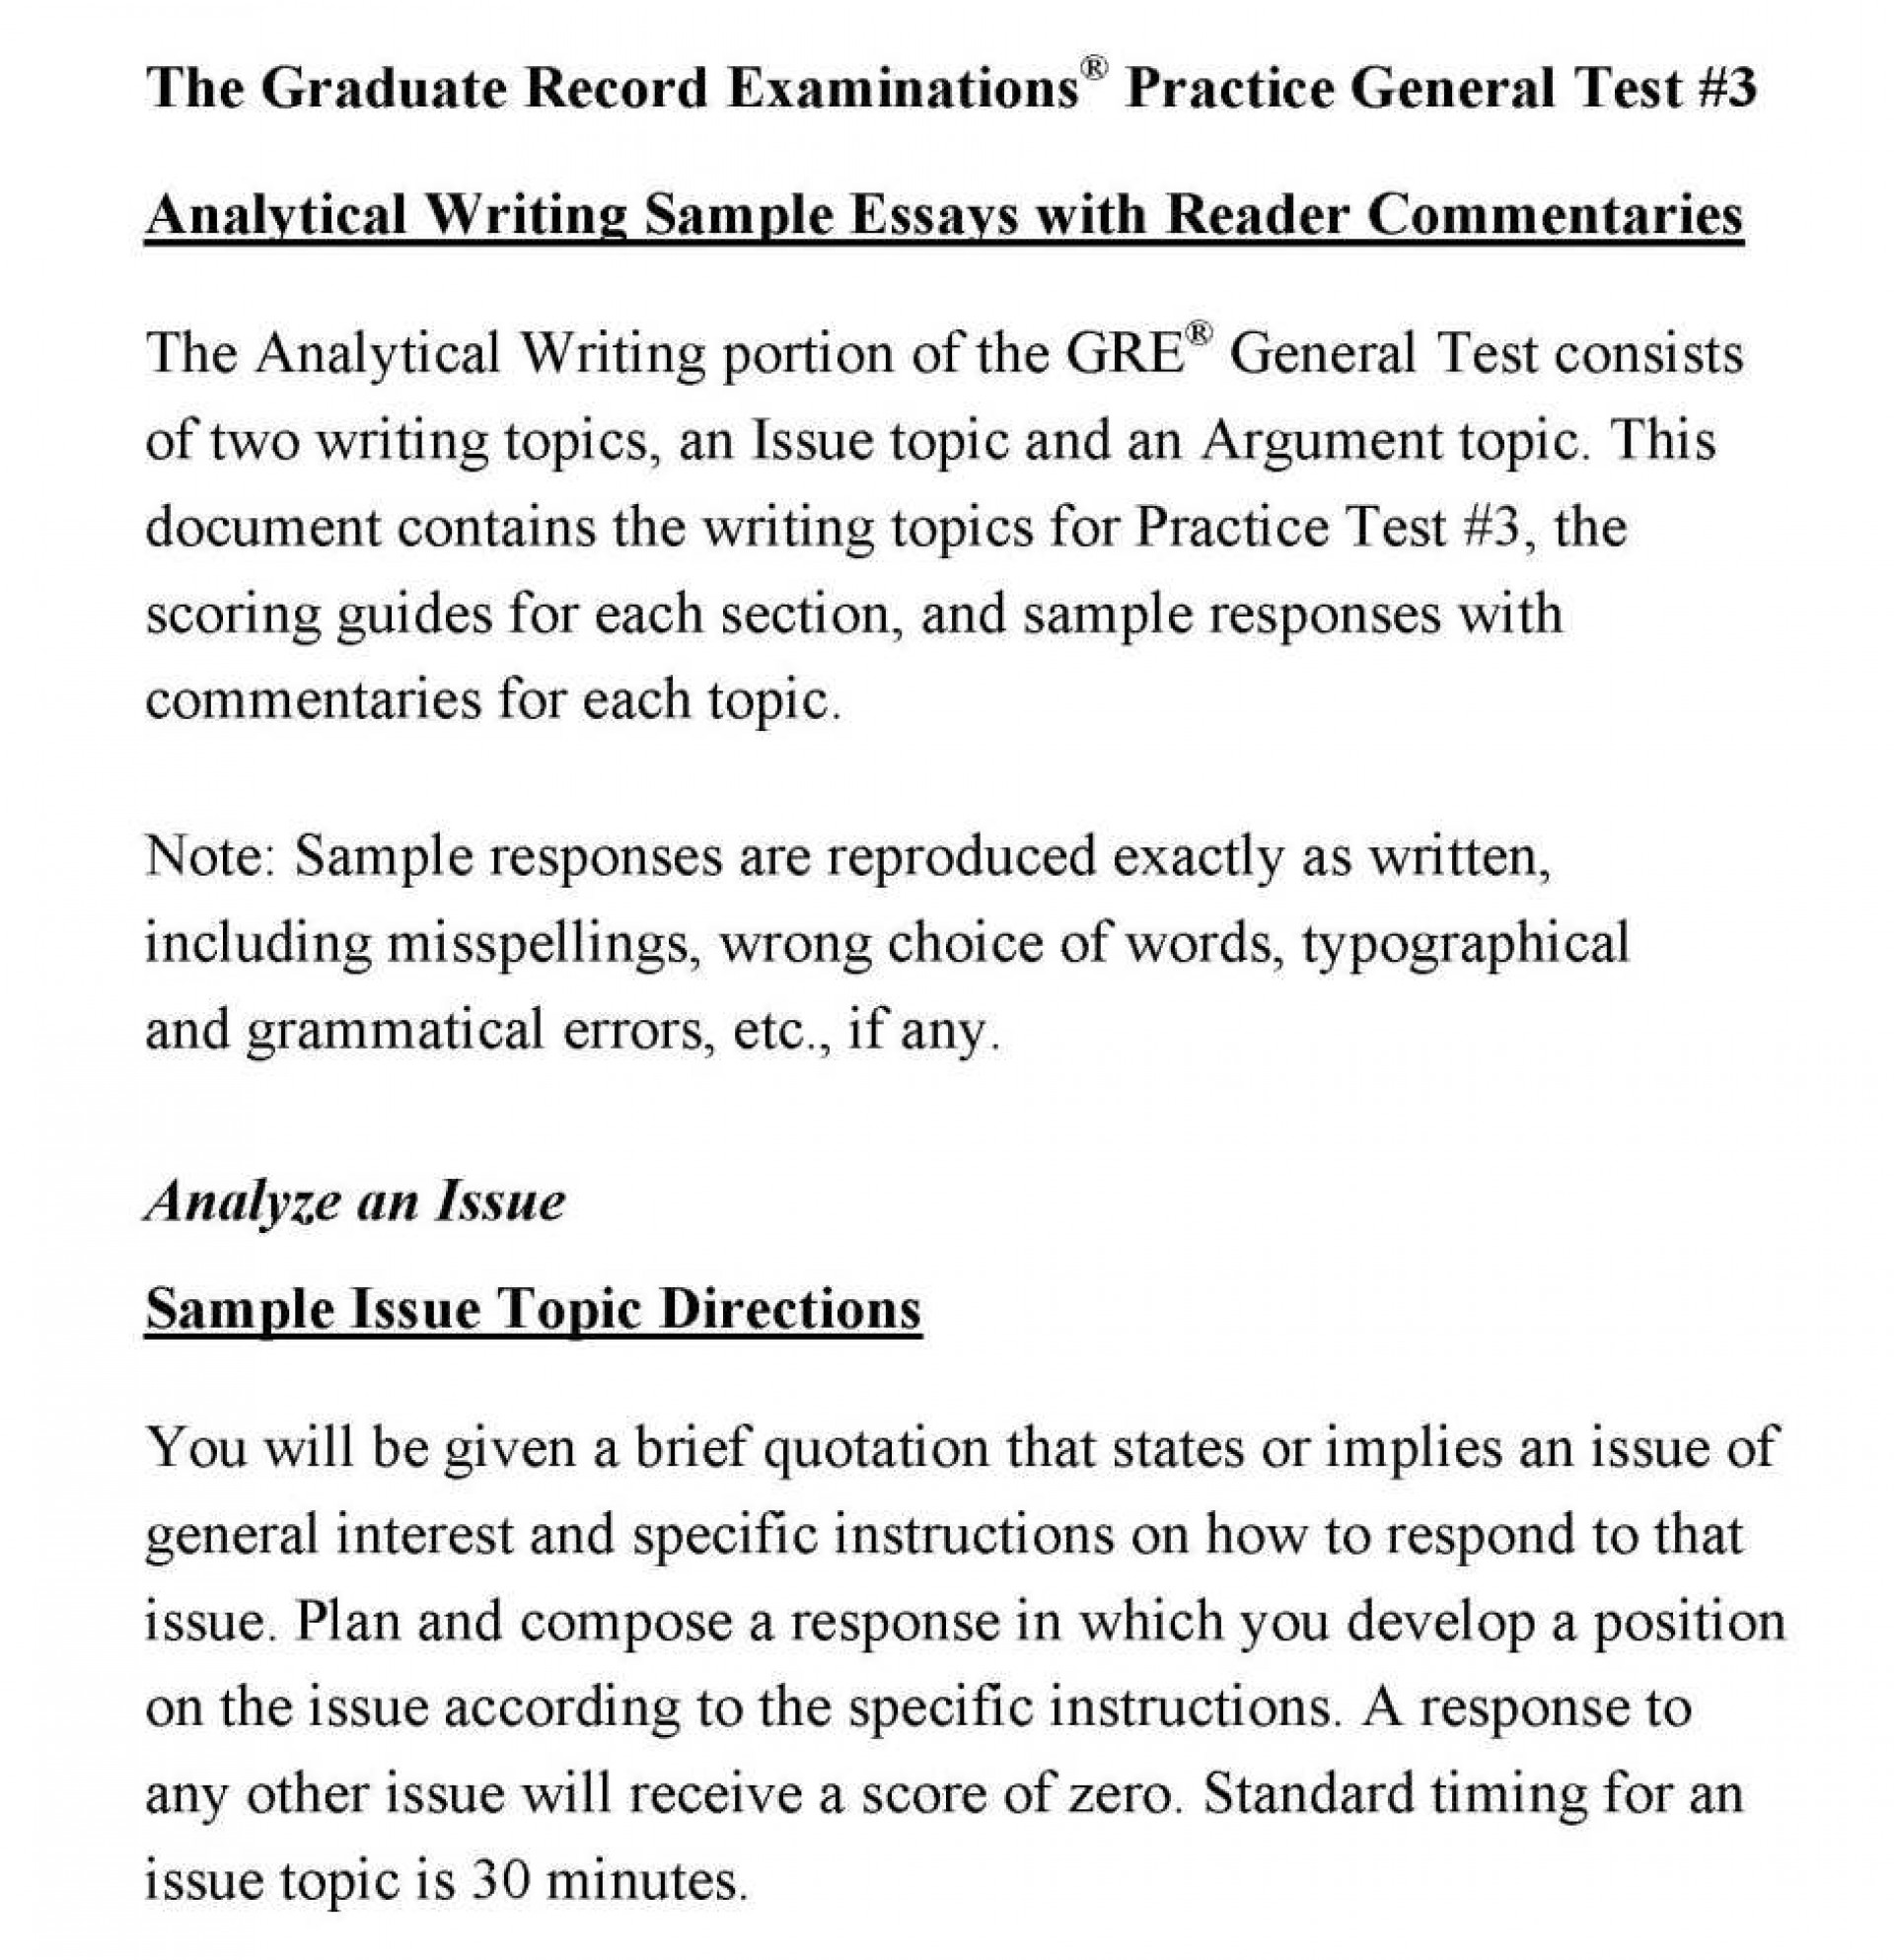 007 Gre Essays Essay Example How To Write Goal Blockety Co Sample Gmat Analytical Writing Samp Outstanding Pool Answers Book Pdf 1920